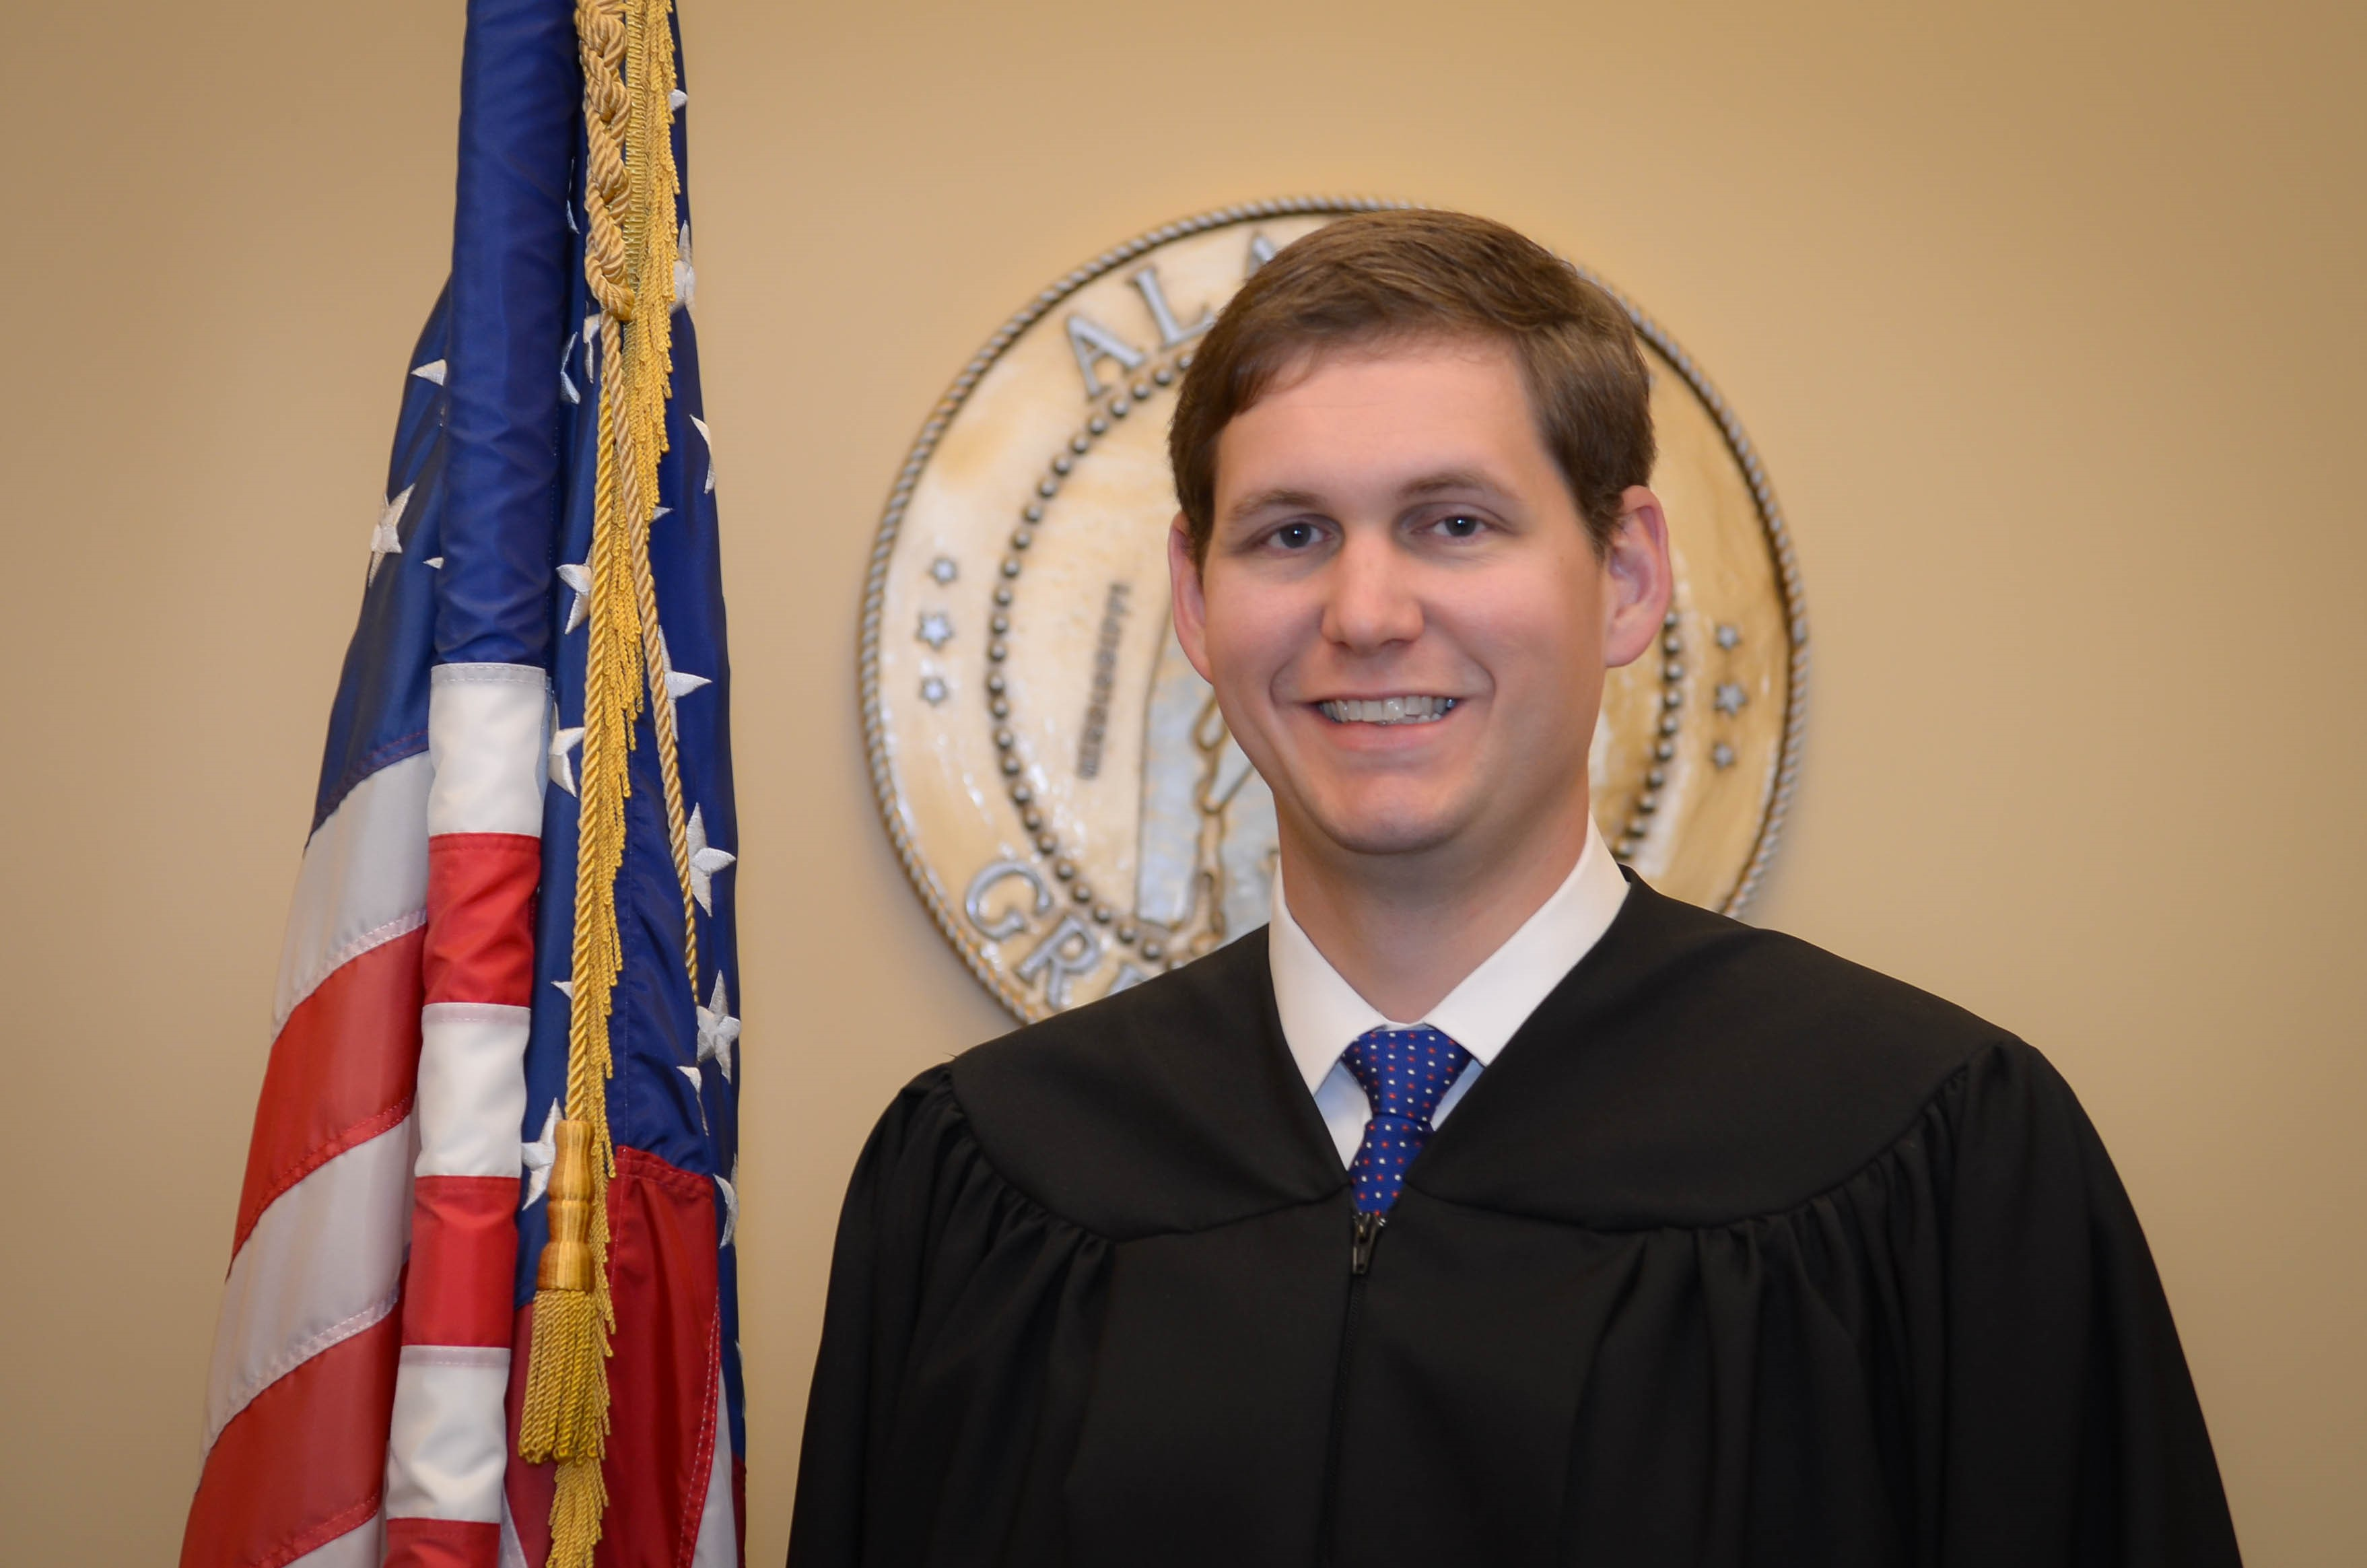 District judge 174th judicial district - Limestone County District Judge Place 1 Doug Patterson 39th Judicial Circuit